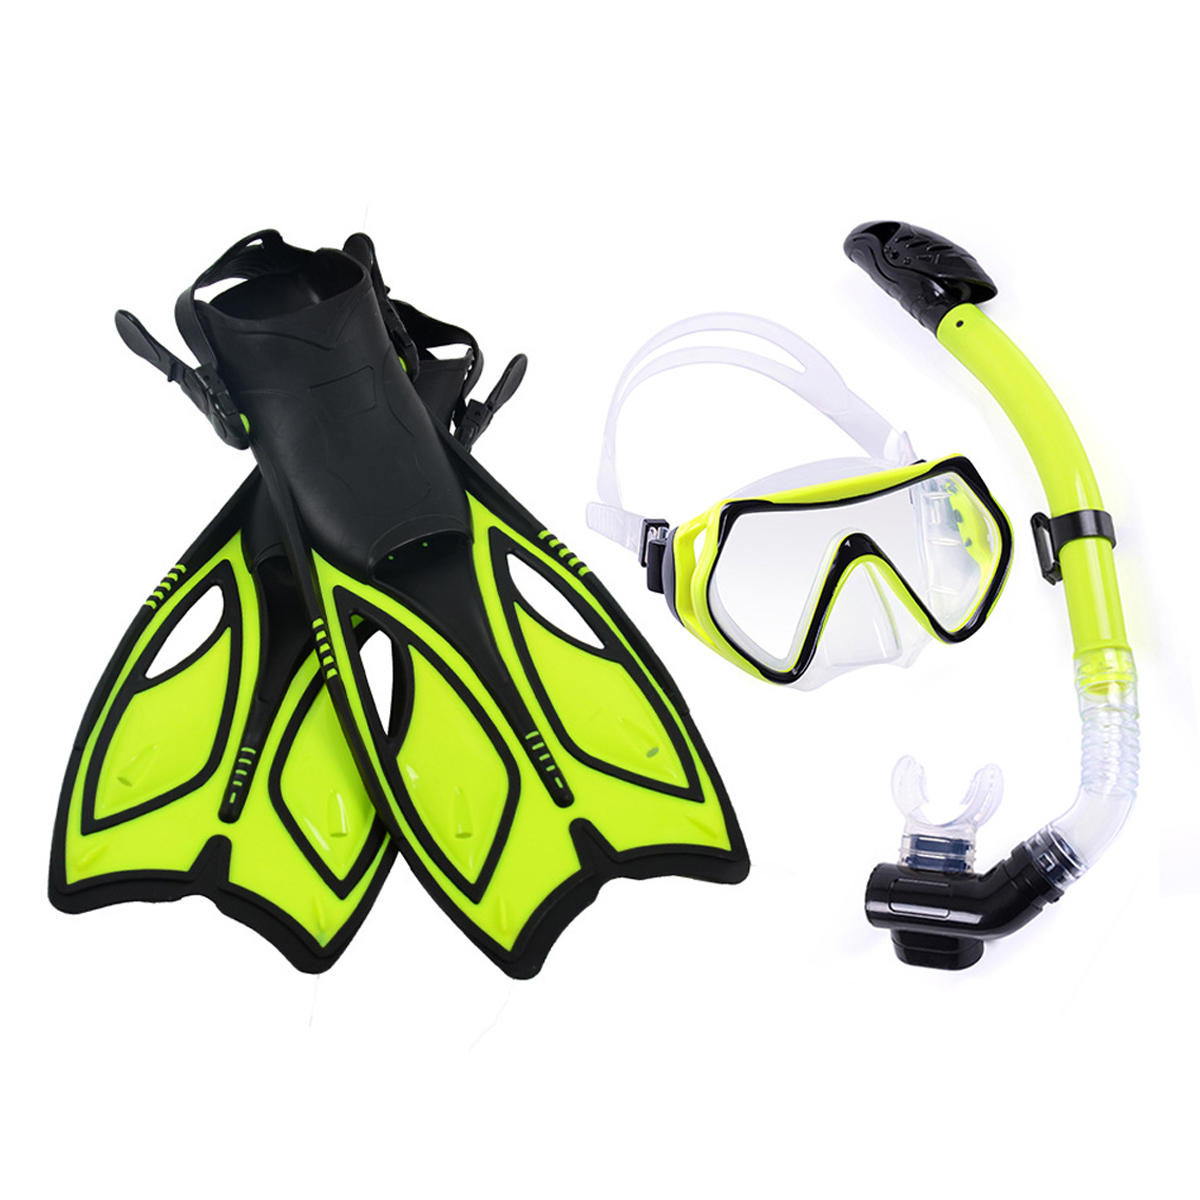 Diving Mirror Snorkeling Mask Rainbow Silicone Breathing - 2